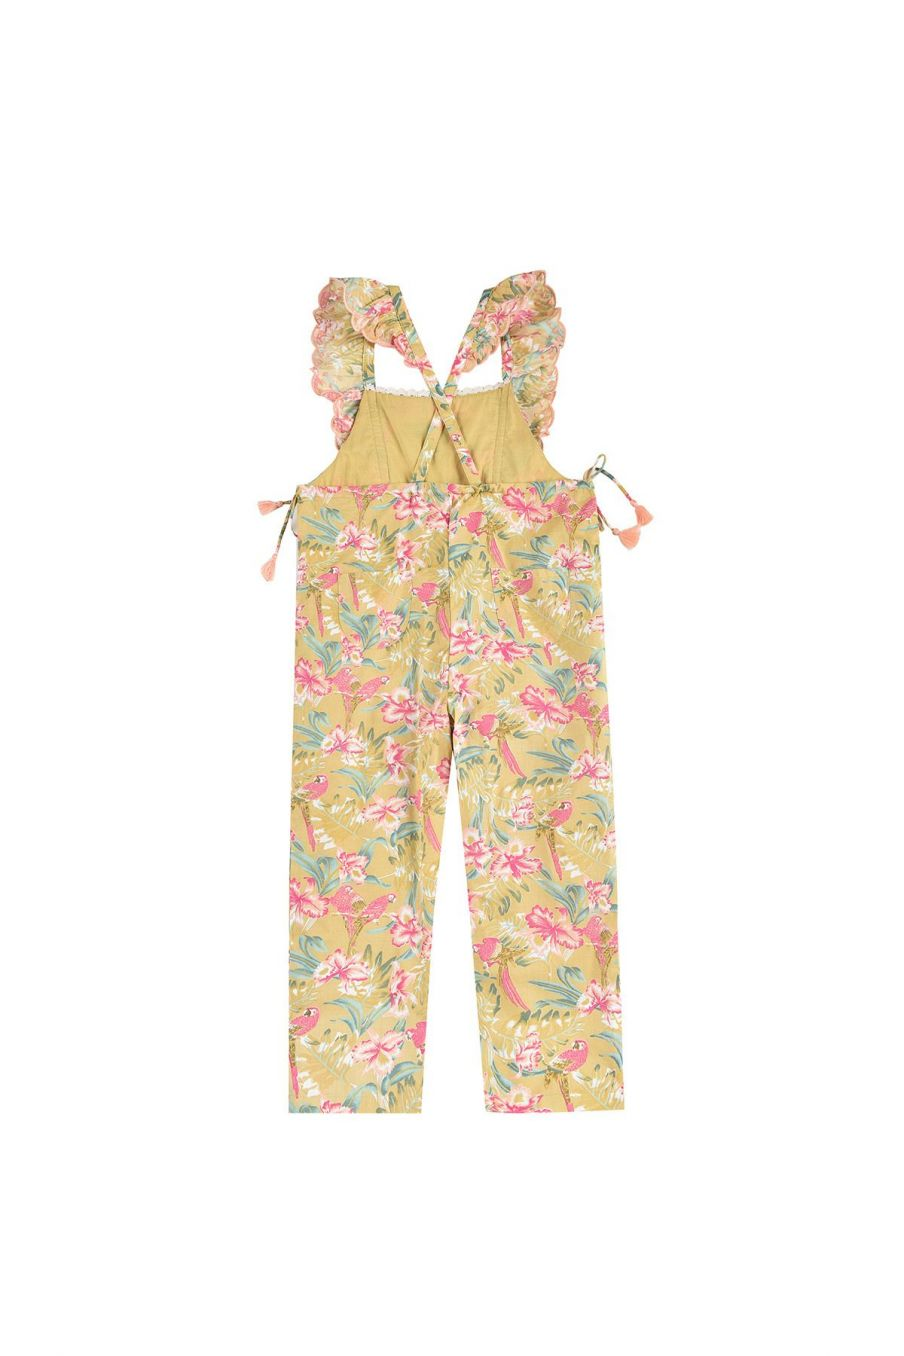 bohemian chic vintage overalls girl talia soft honey parrots